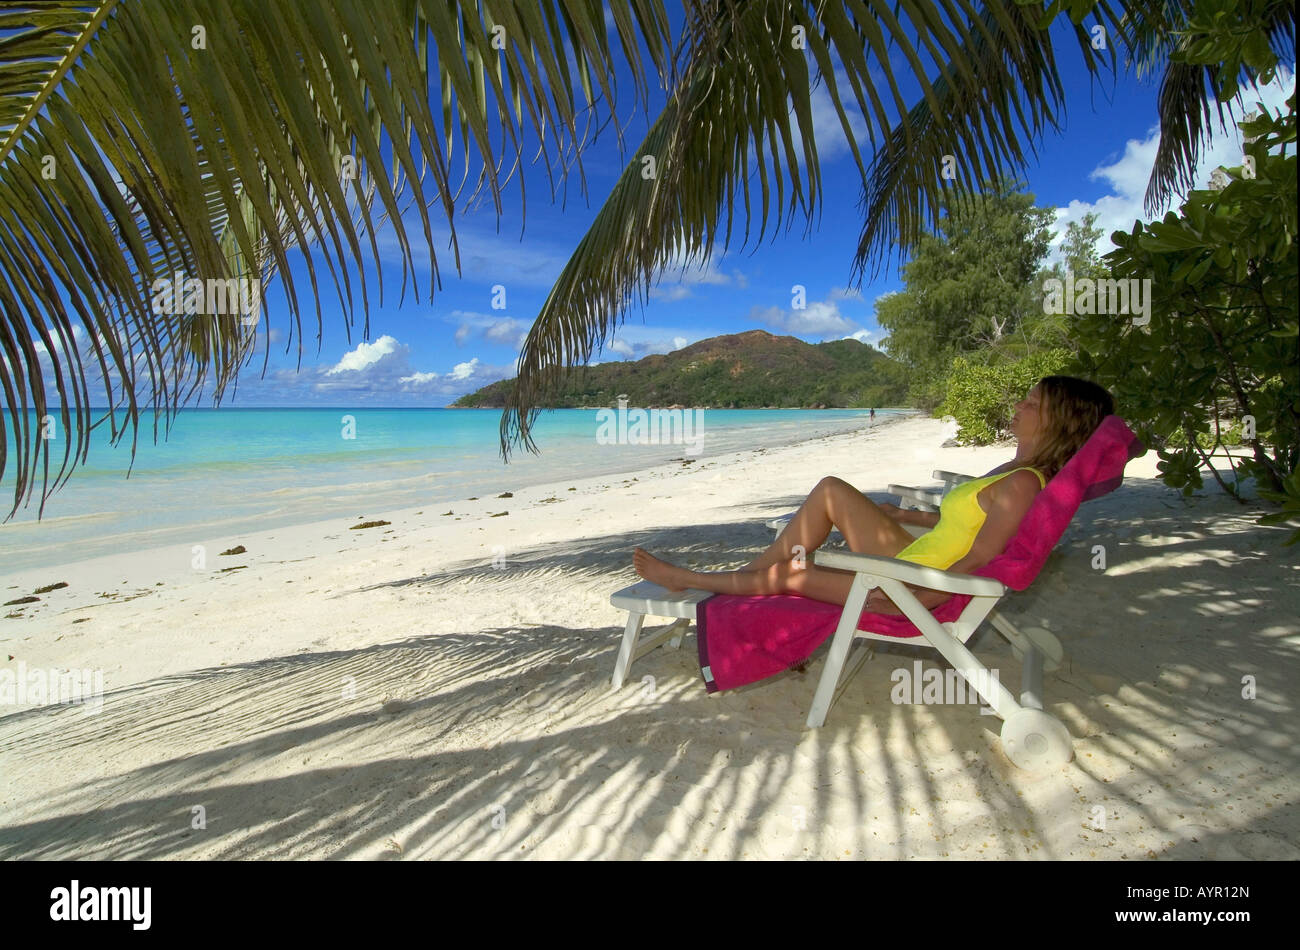 Young woman on deck chair, sleeping under palm trees, Praslin Island, Seychelles, Africa Stock Photo